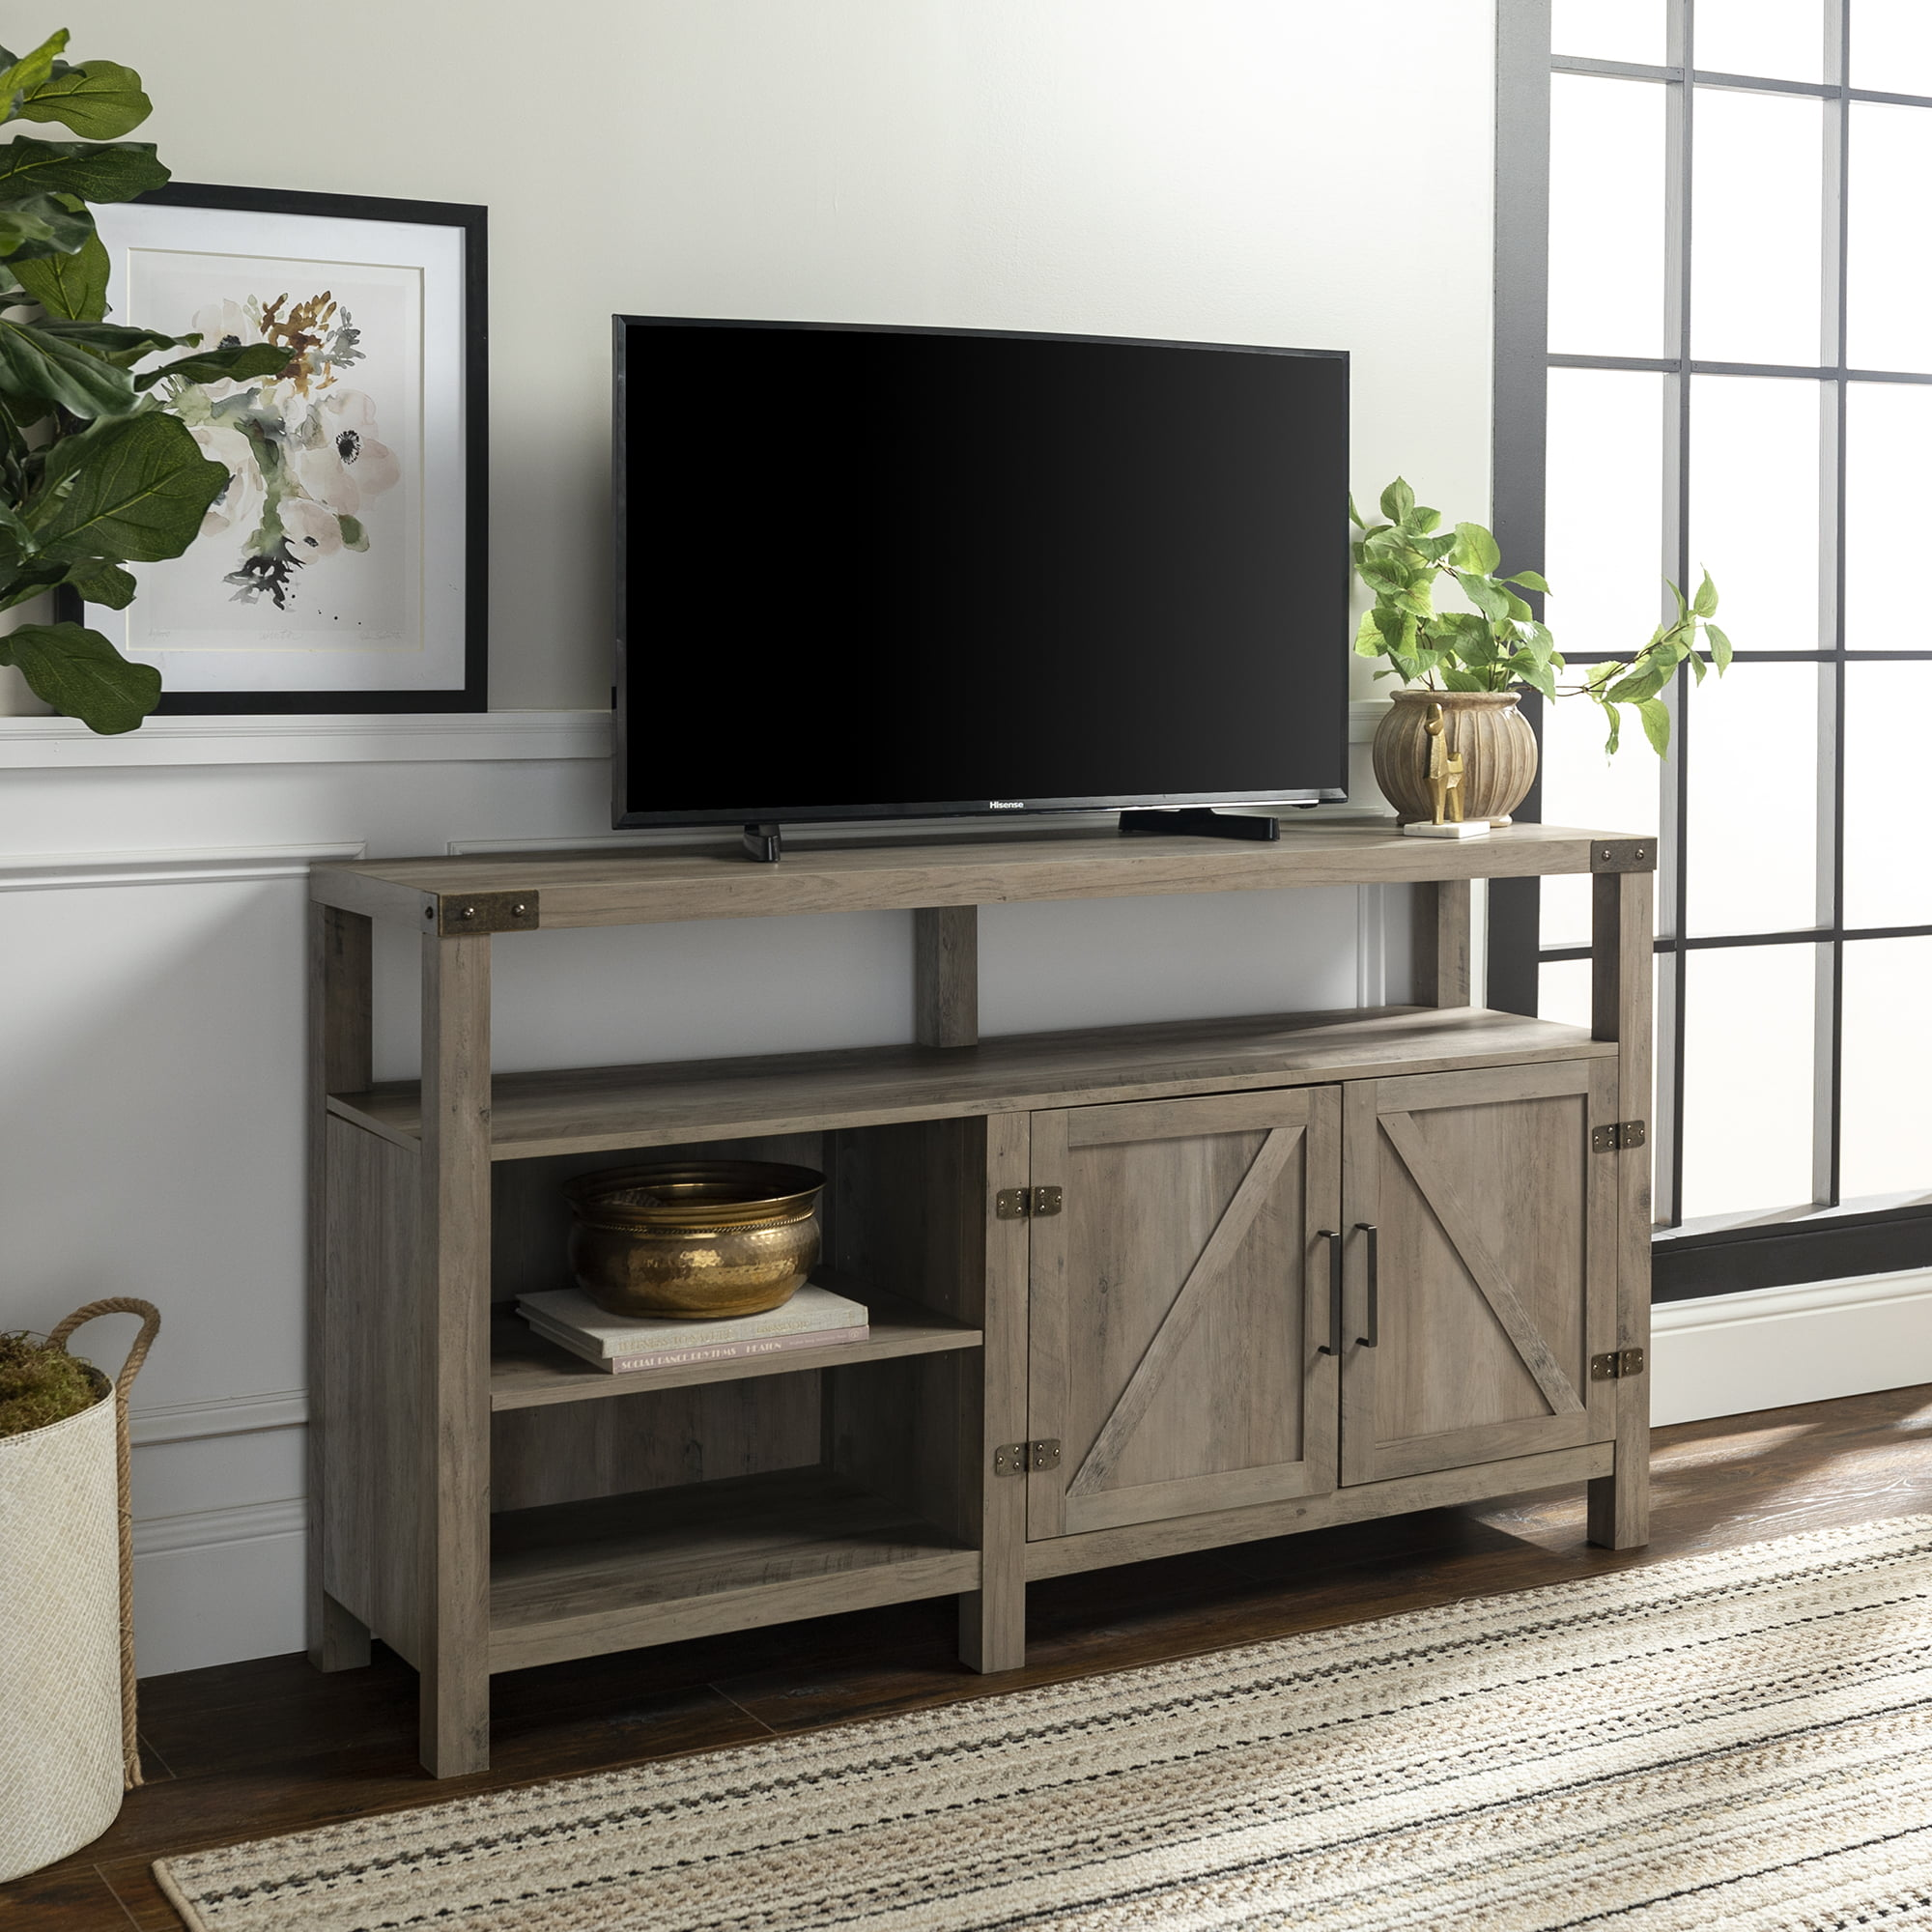 Manor Park Modern Farmhouse Tall Barn Door Tv Stand For Tv S Up To 64 Grey Wash Deal Brickseek